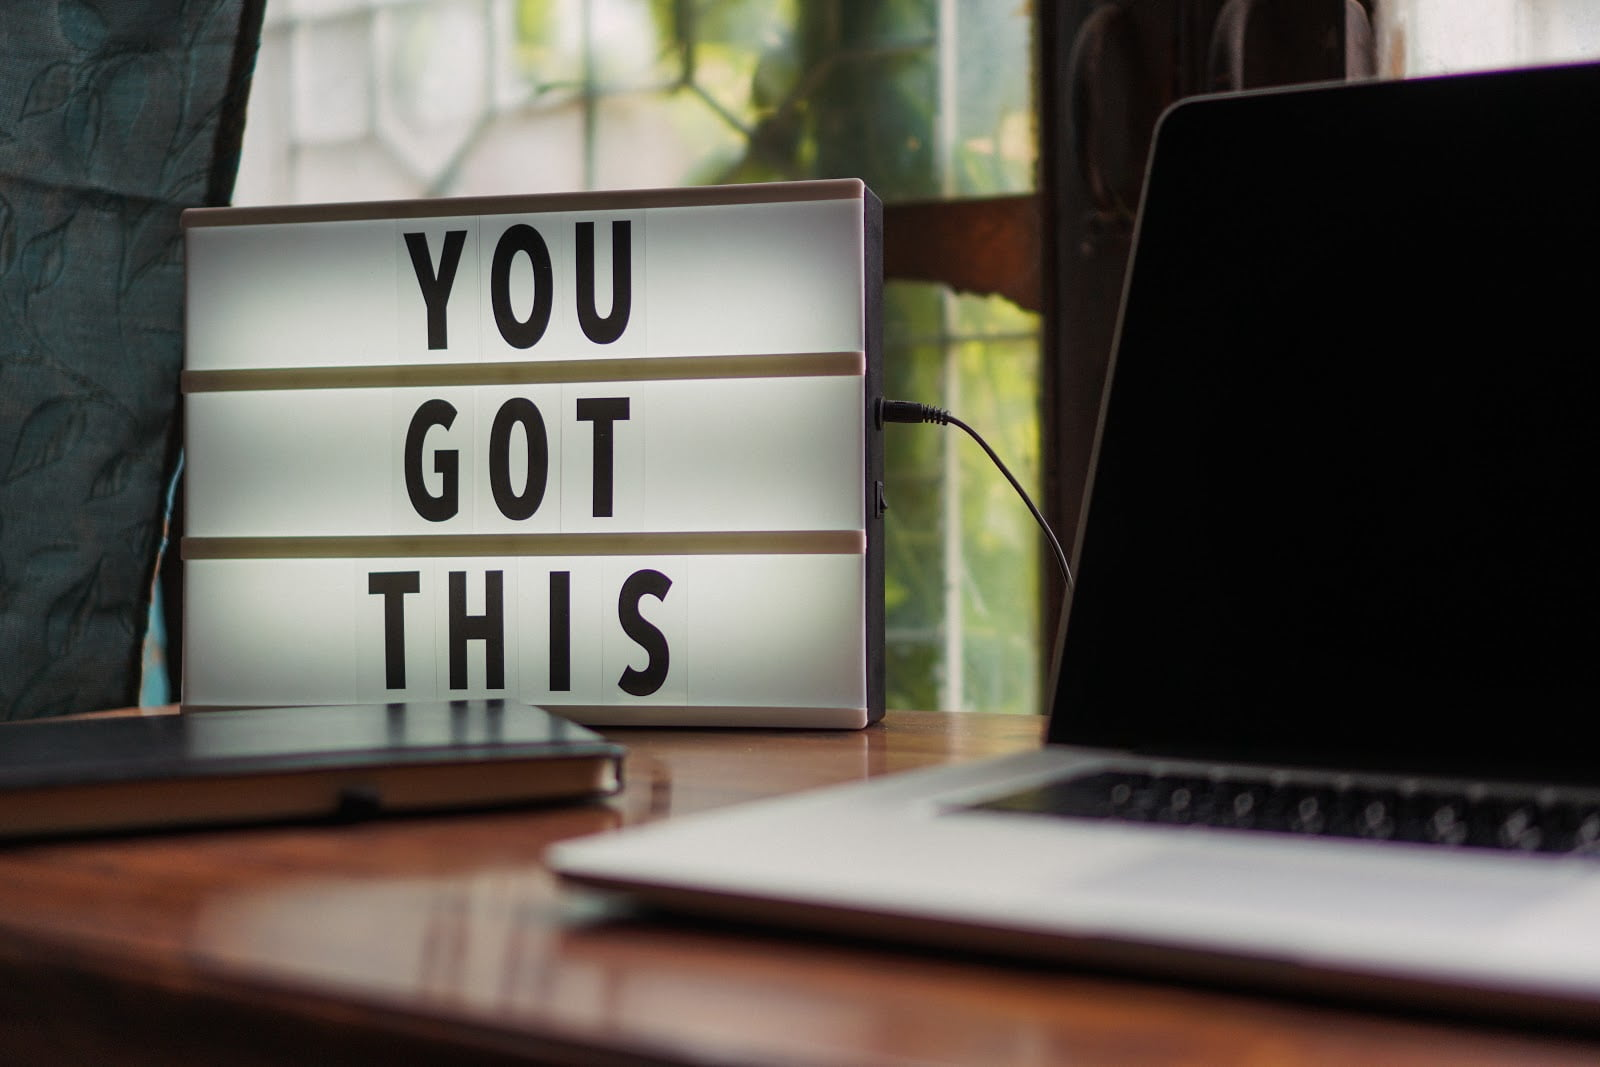 You got this sign on desk next to laptop